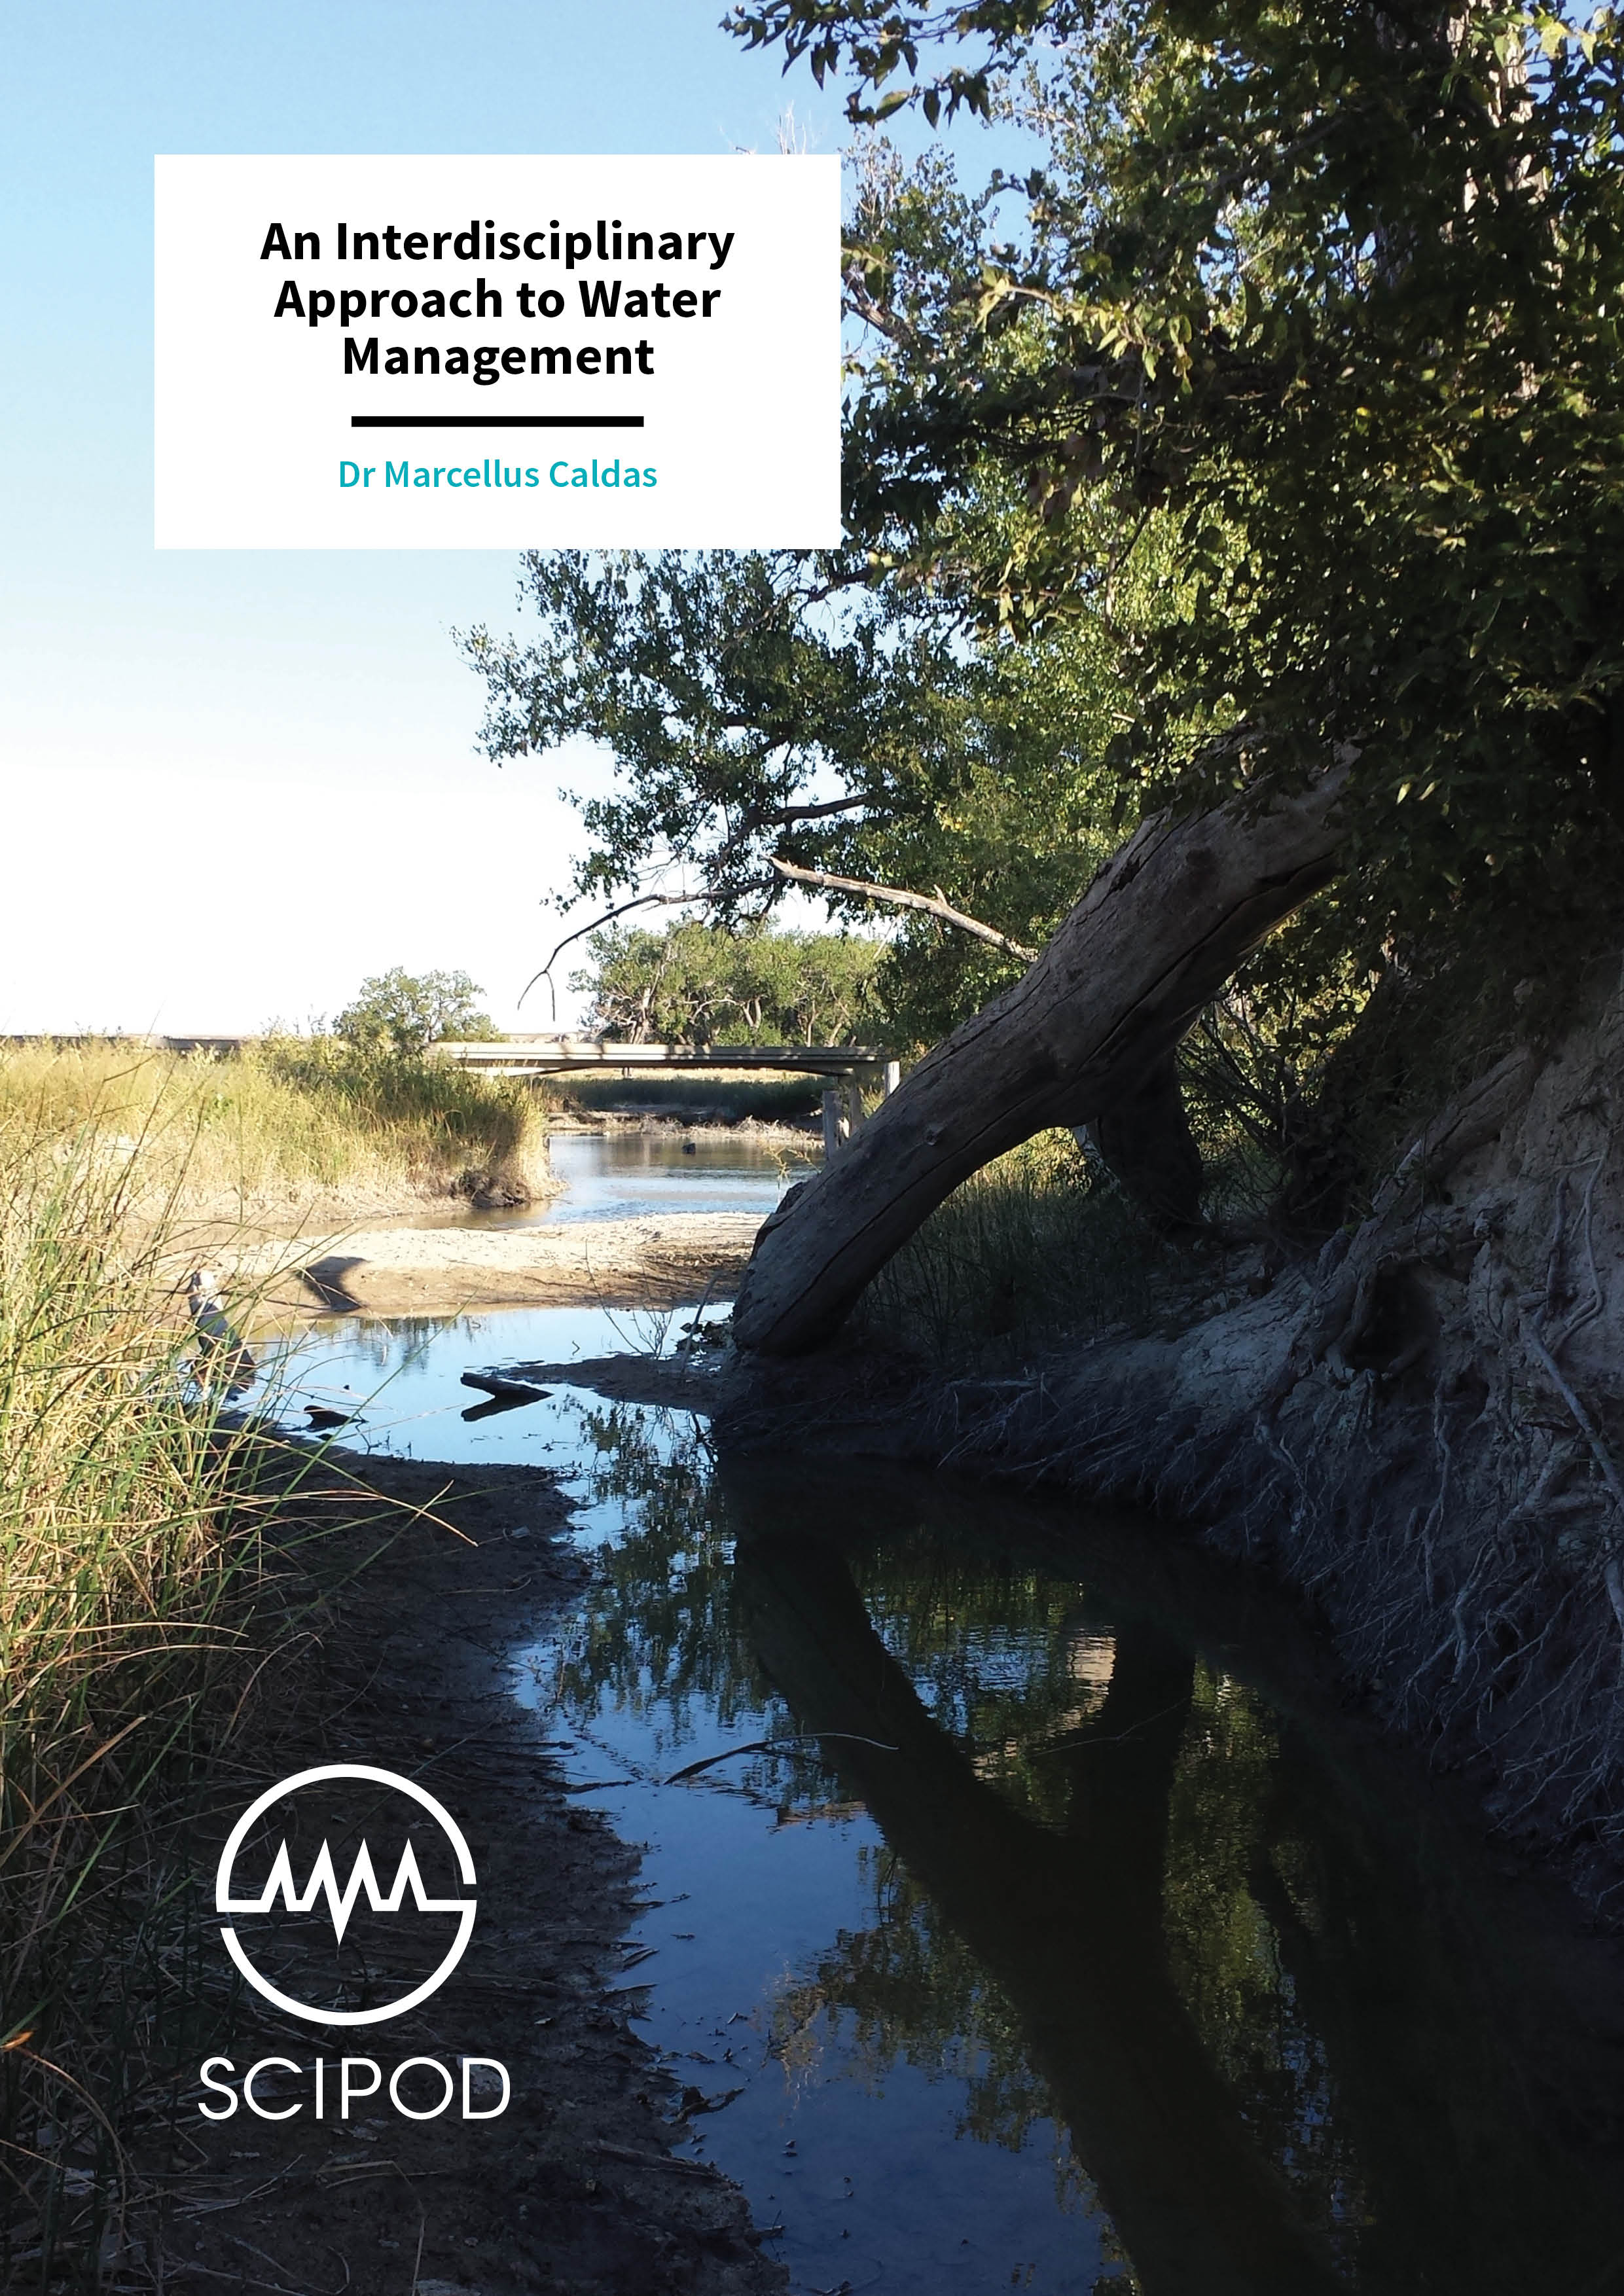 An Interdisciplinary Approach to Water Management – Drs Marcellus Caldas & Melinda Daniels, Stroud Water Research Centre